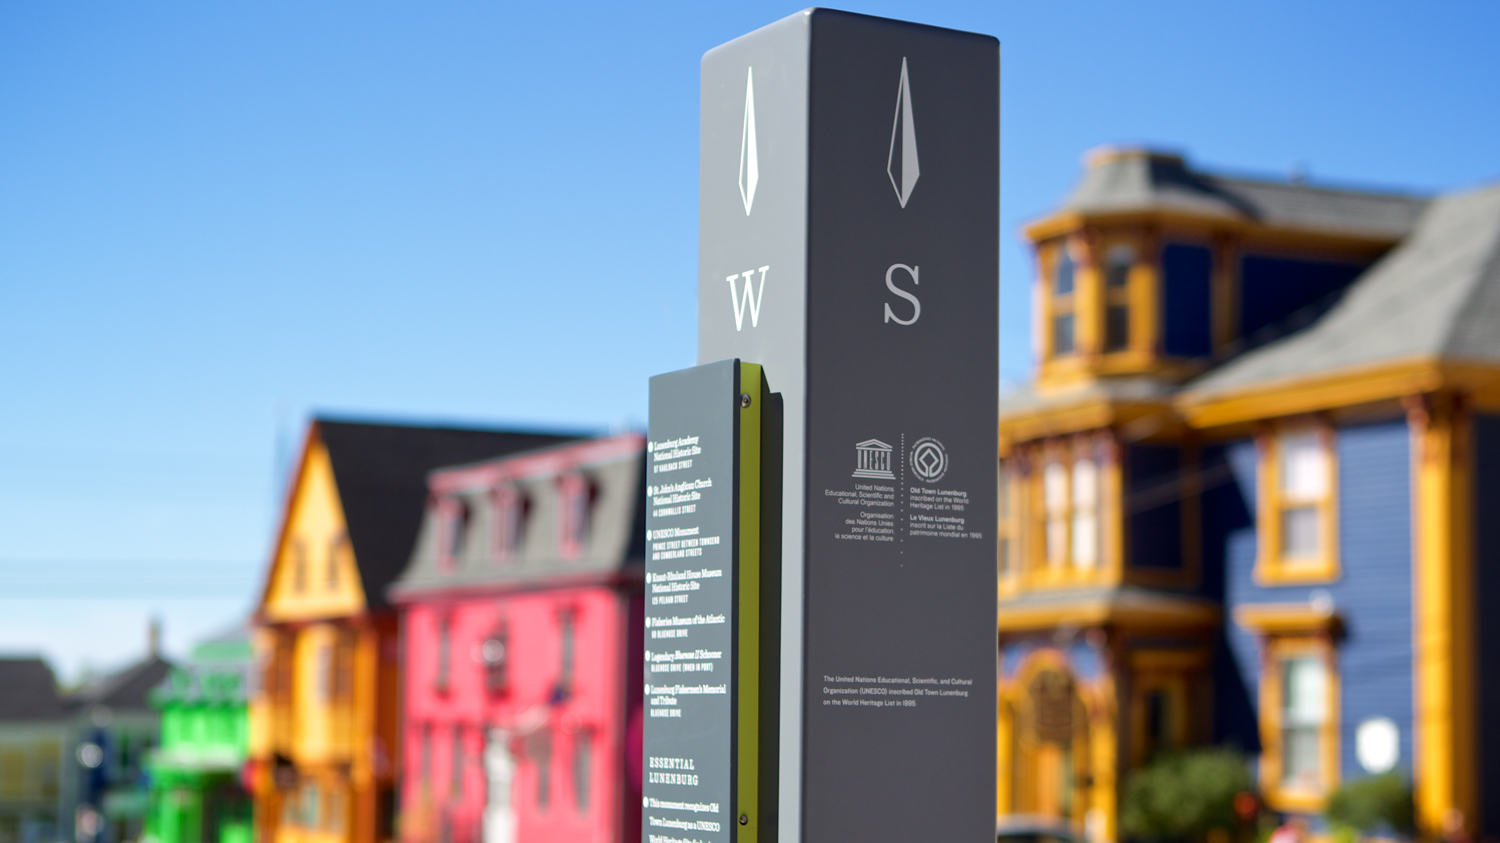 TOWN OF LUNENBURG PEDESTRIAN WAYFINDING SYSTEM The design team took special pride and satisfaction in this project, knowing they were contributing to the enhancement of a world-renowned heritage site. They purposefully choose typefaces that are suggestive of eras past, and a colour palette that would not detract from the town's brightly coloured houses. The sign's slender vertical form fits the very narrow pedestrian corridor, often bustling with visitors in the summer season. Located at key corners and junctions throughout the town, the signs share historical information and directions to buildings of interest and the area's main attractions.